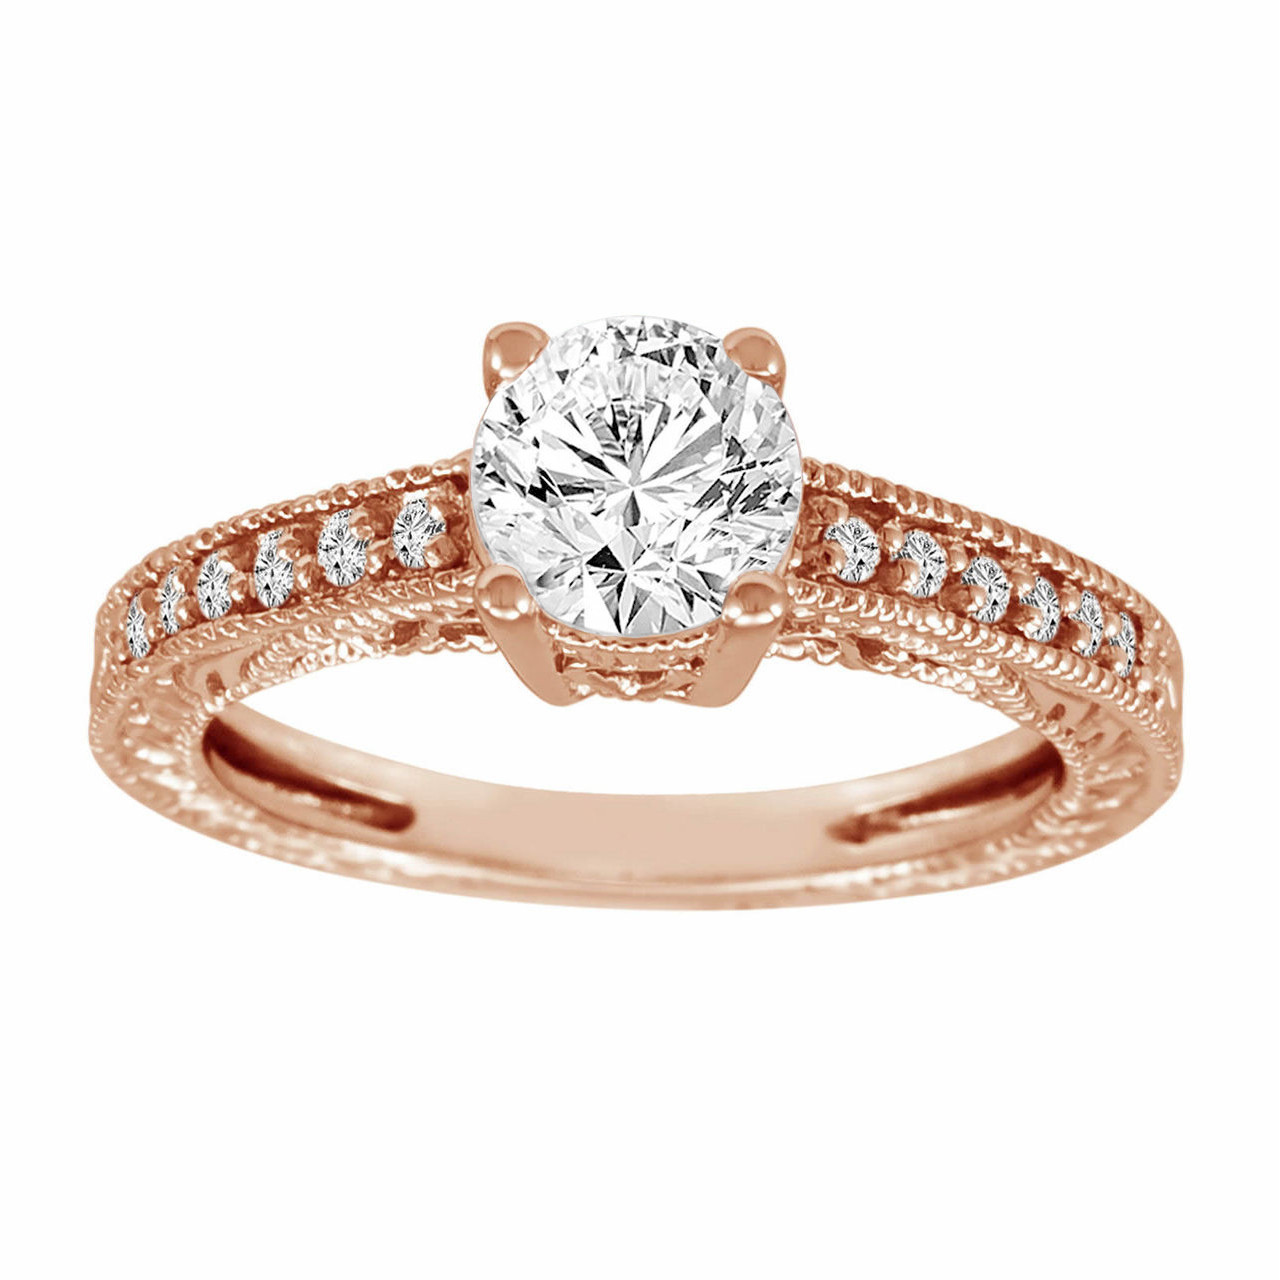 Antique Style 4 2mm Platinum Men S Wedding Band With: Diamond Engagement Ring 14K Rose Gold 1.15 Carat Certified